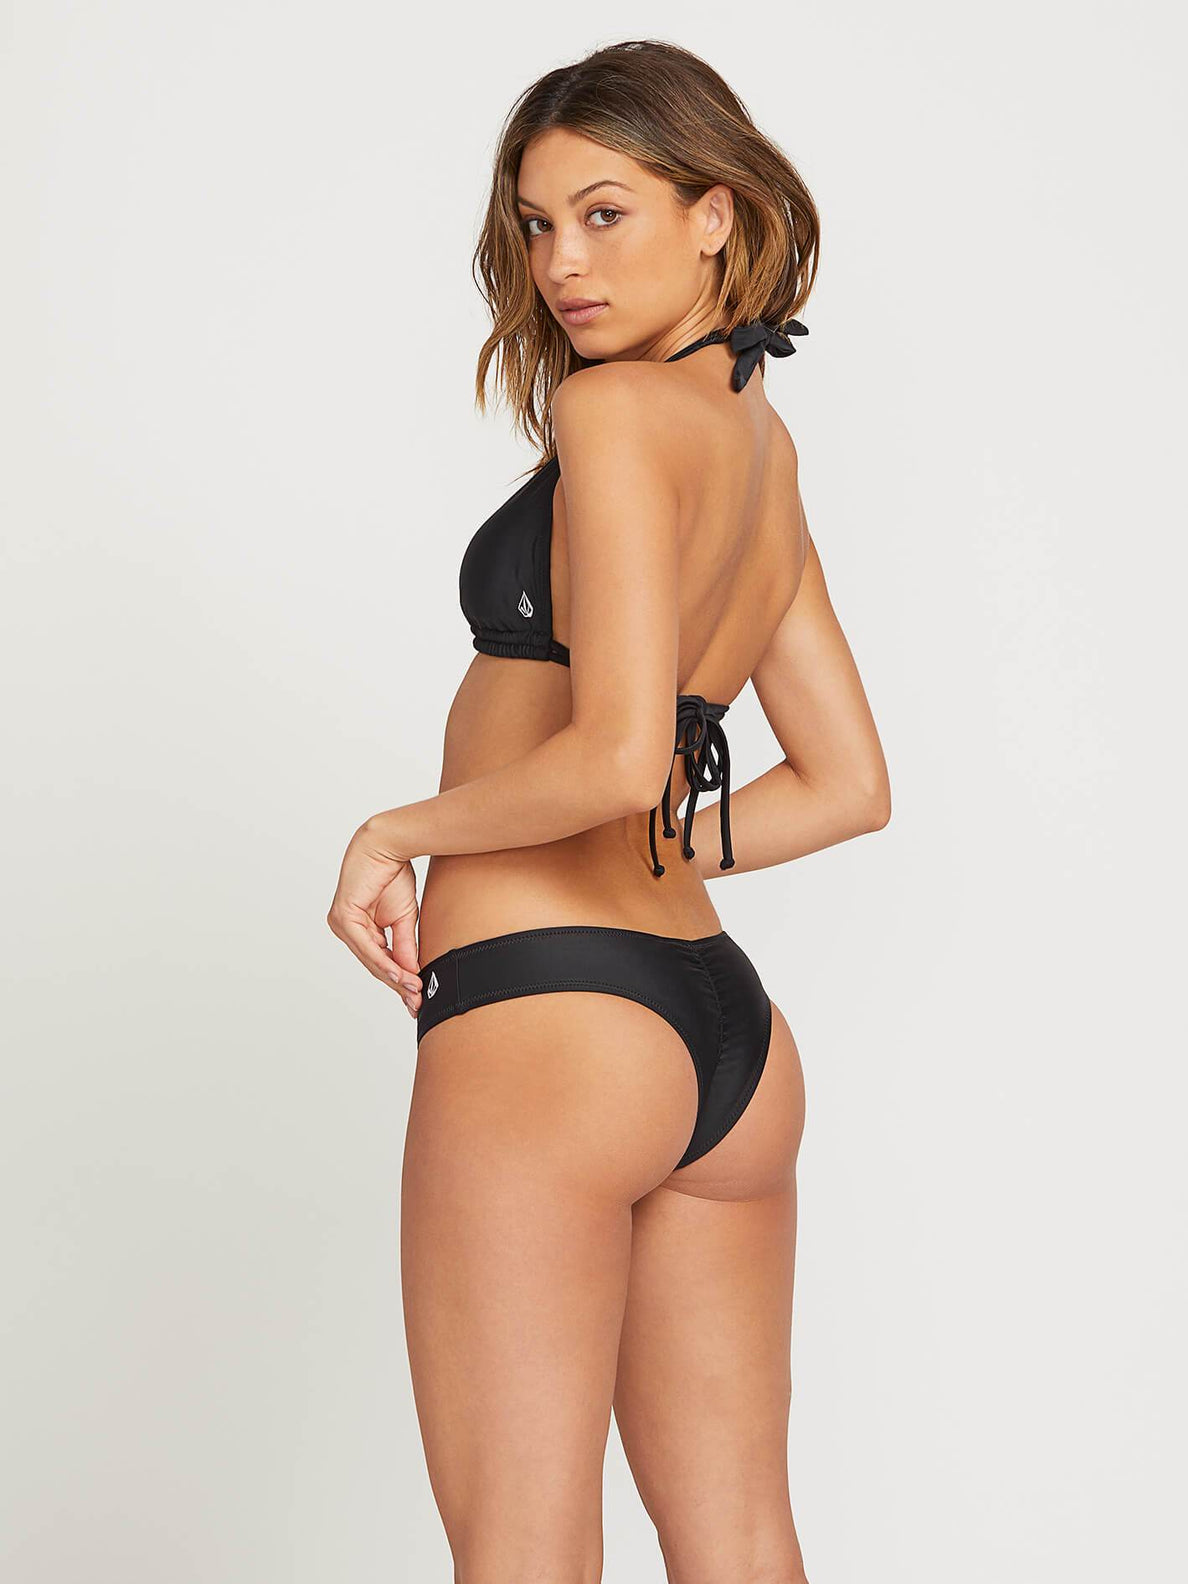 Simply Solid Cheeky Bottoms In Black, Front View